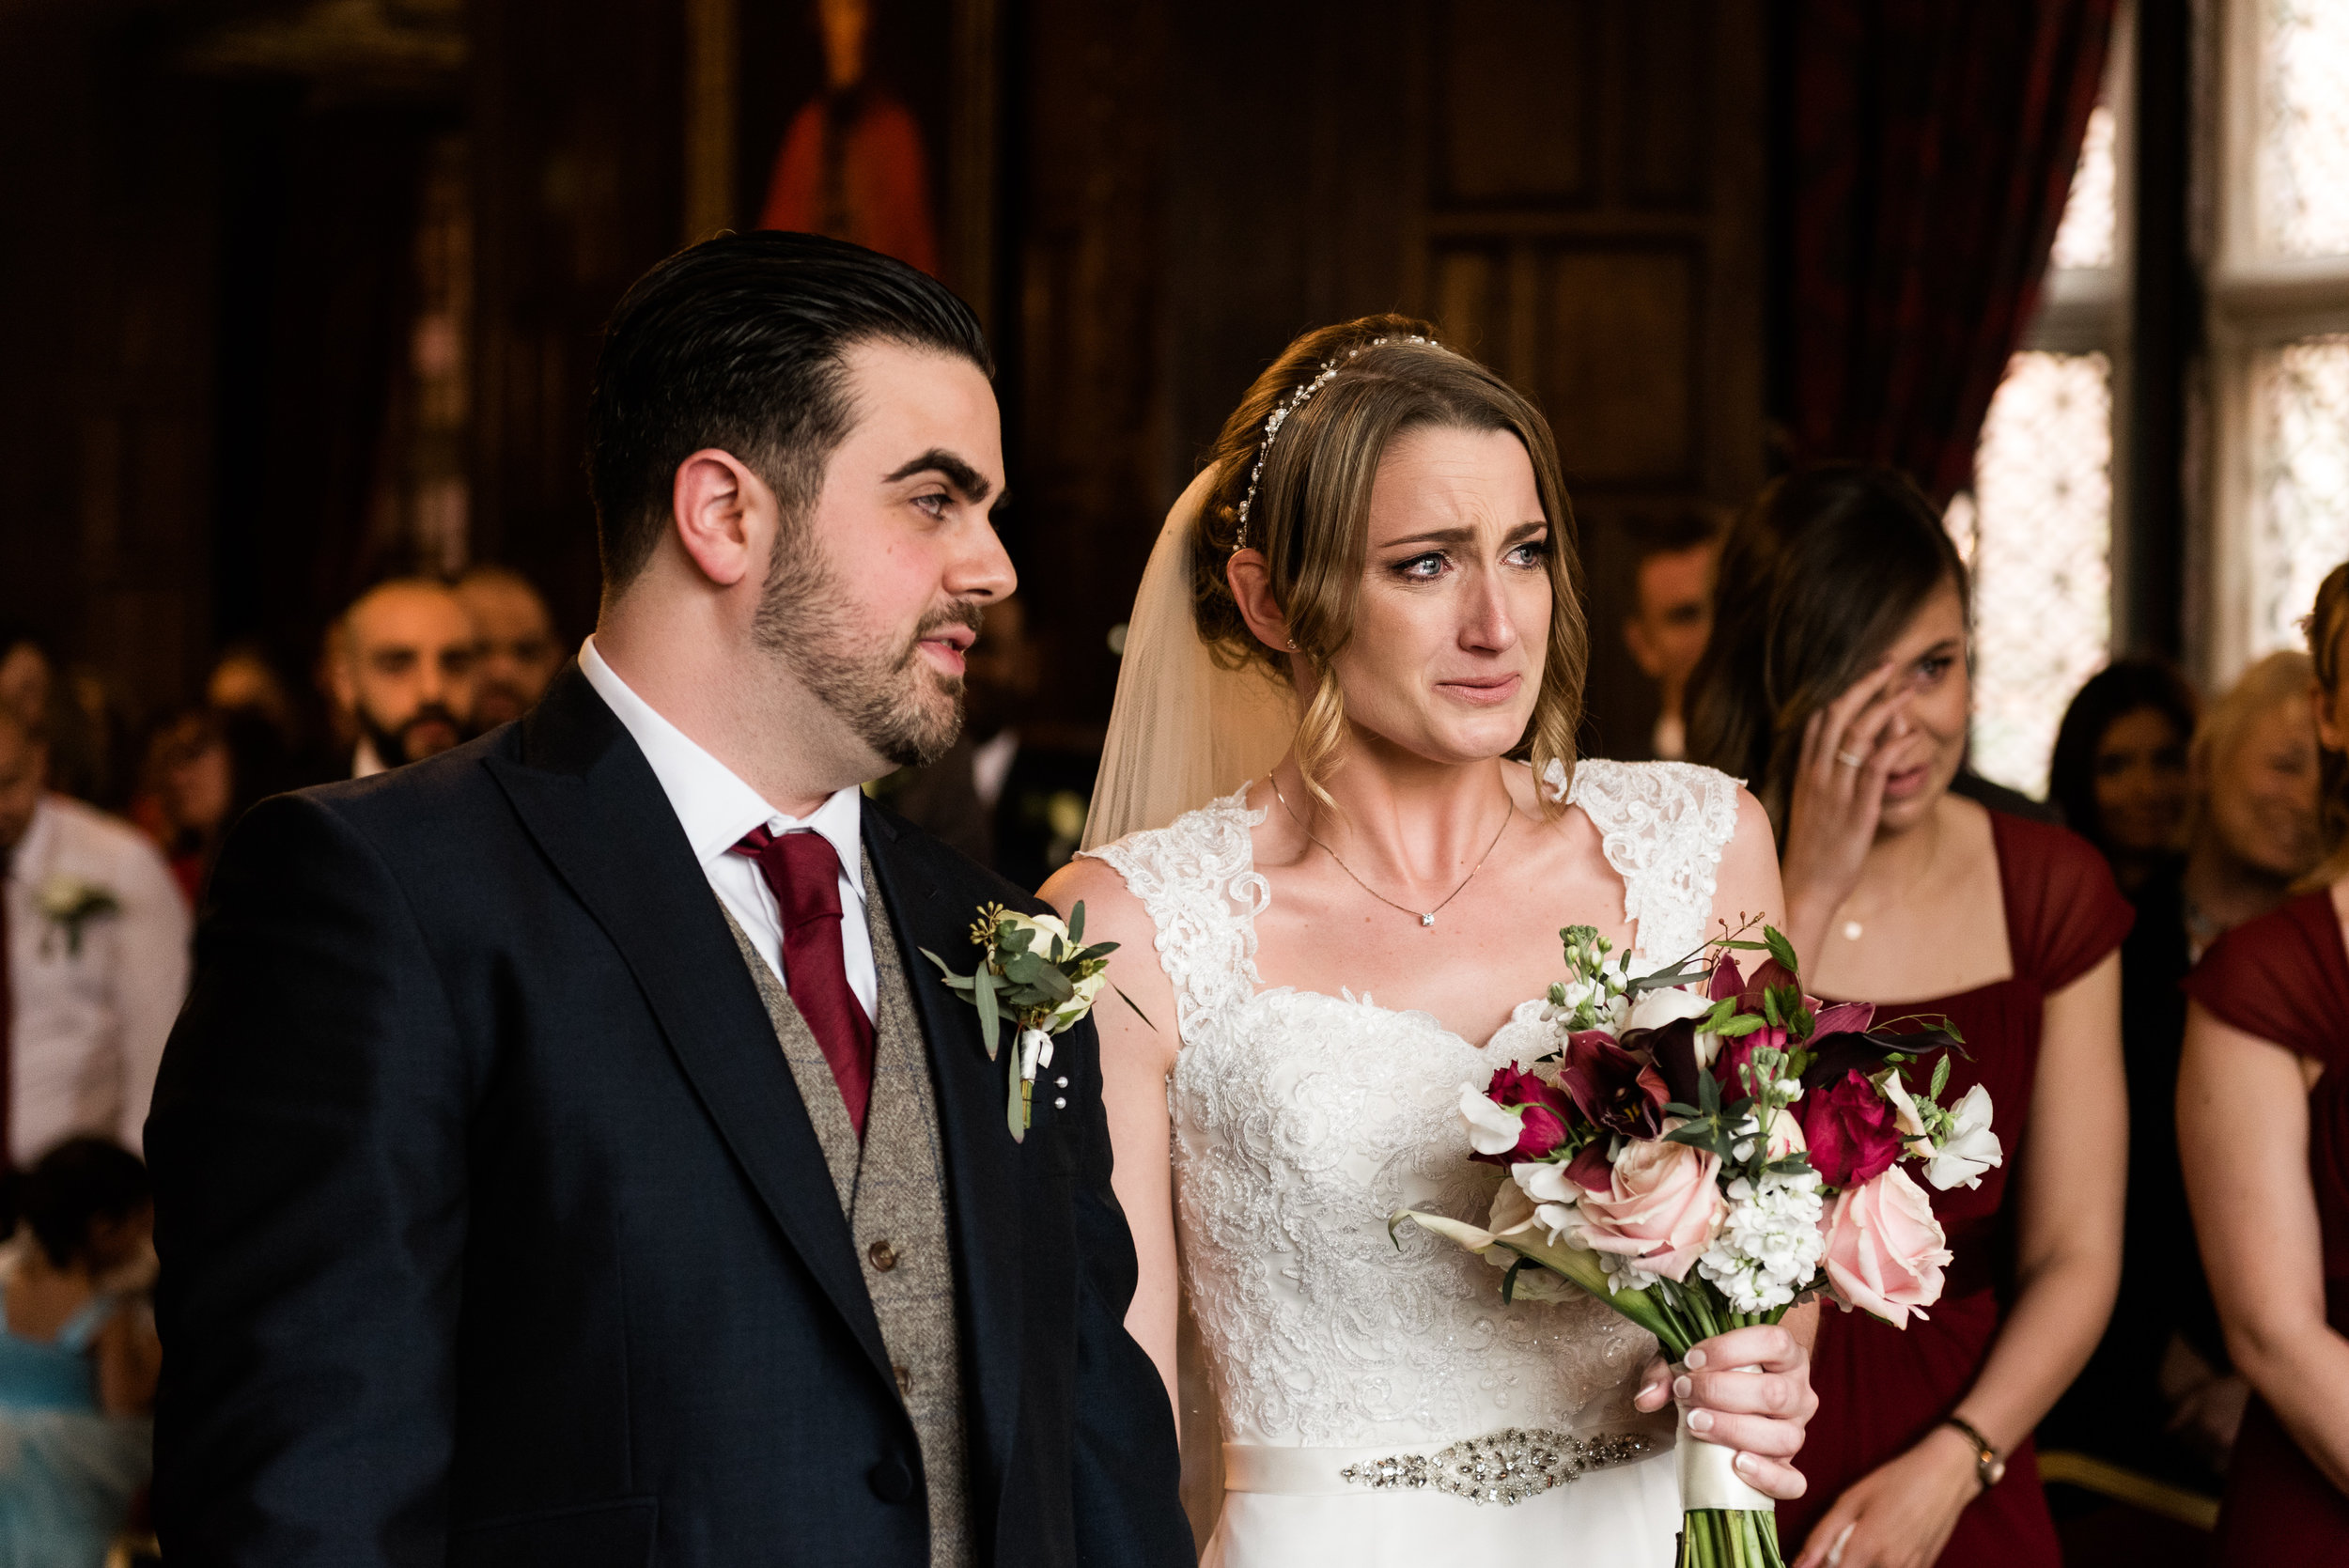 Birmingham Documentary Wedding Photography at New Hall, Sutton Coldfield Turkish Red Candid Reportage - Jenny Harper-28.jpg